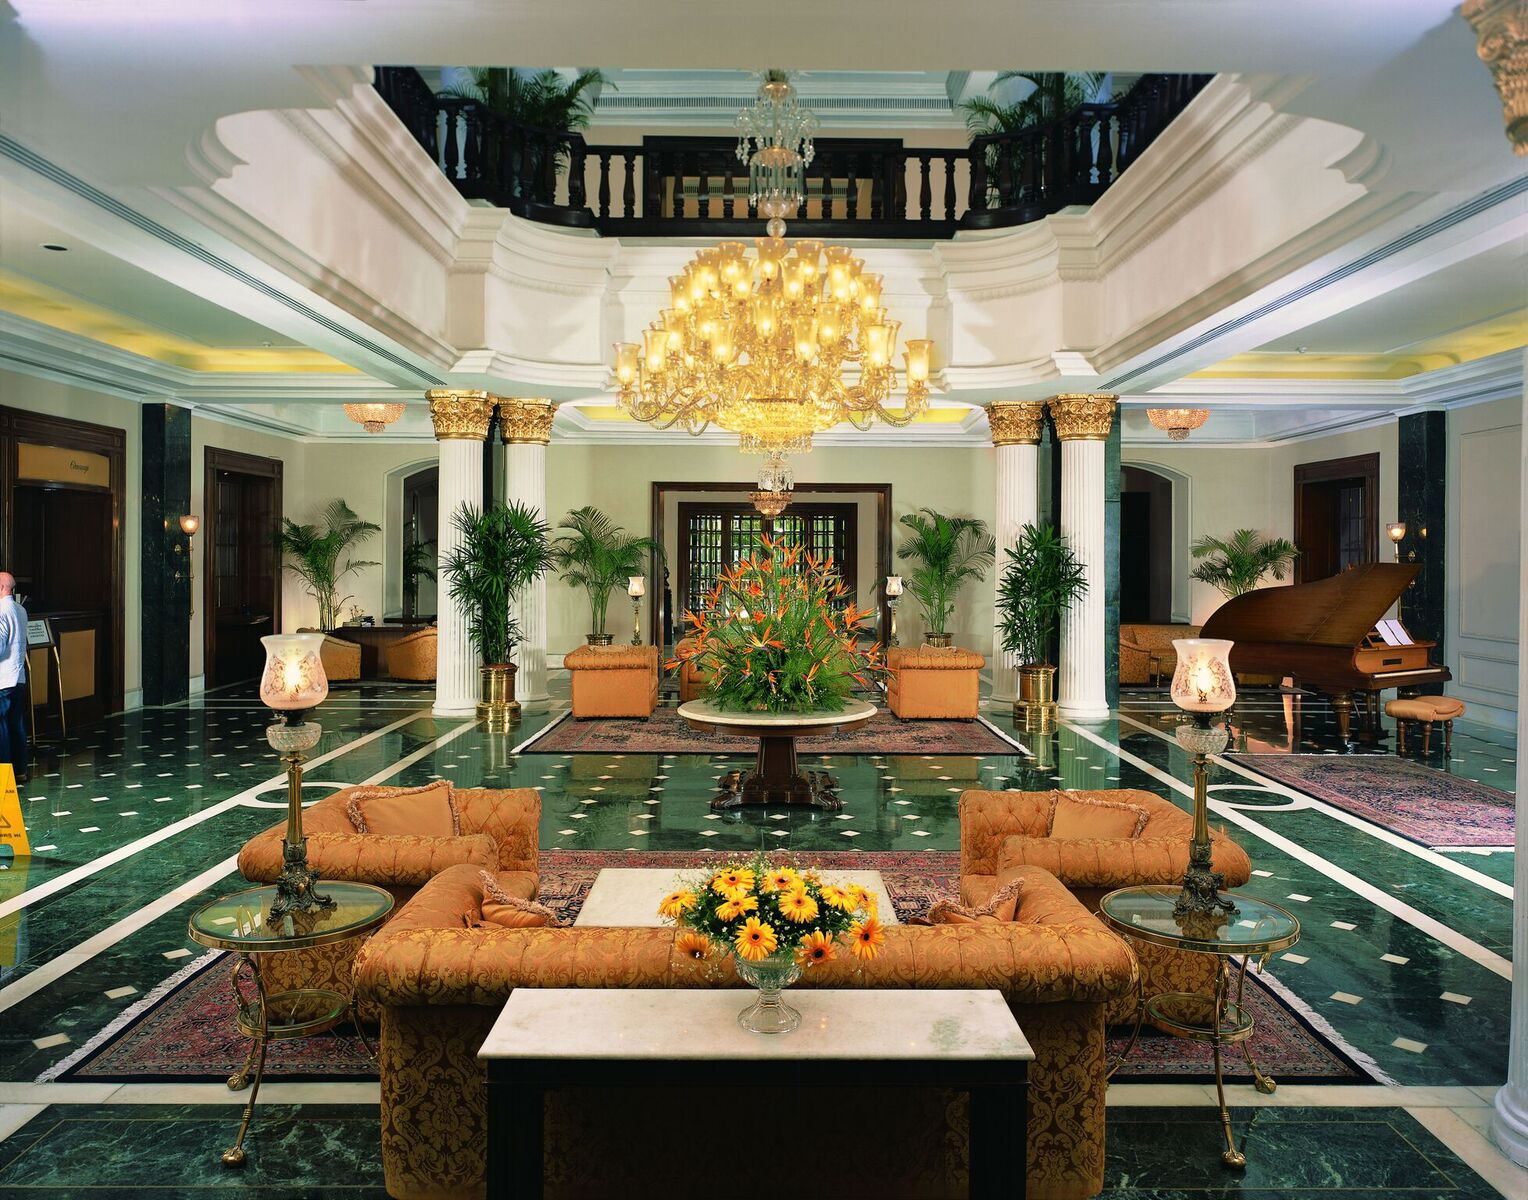 50 of the best luxury hotels in india greaves india for Top design hotels india